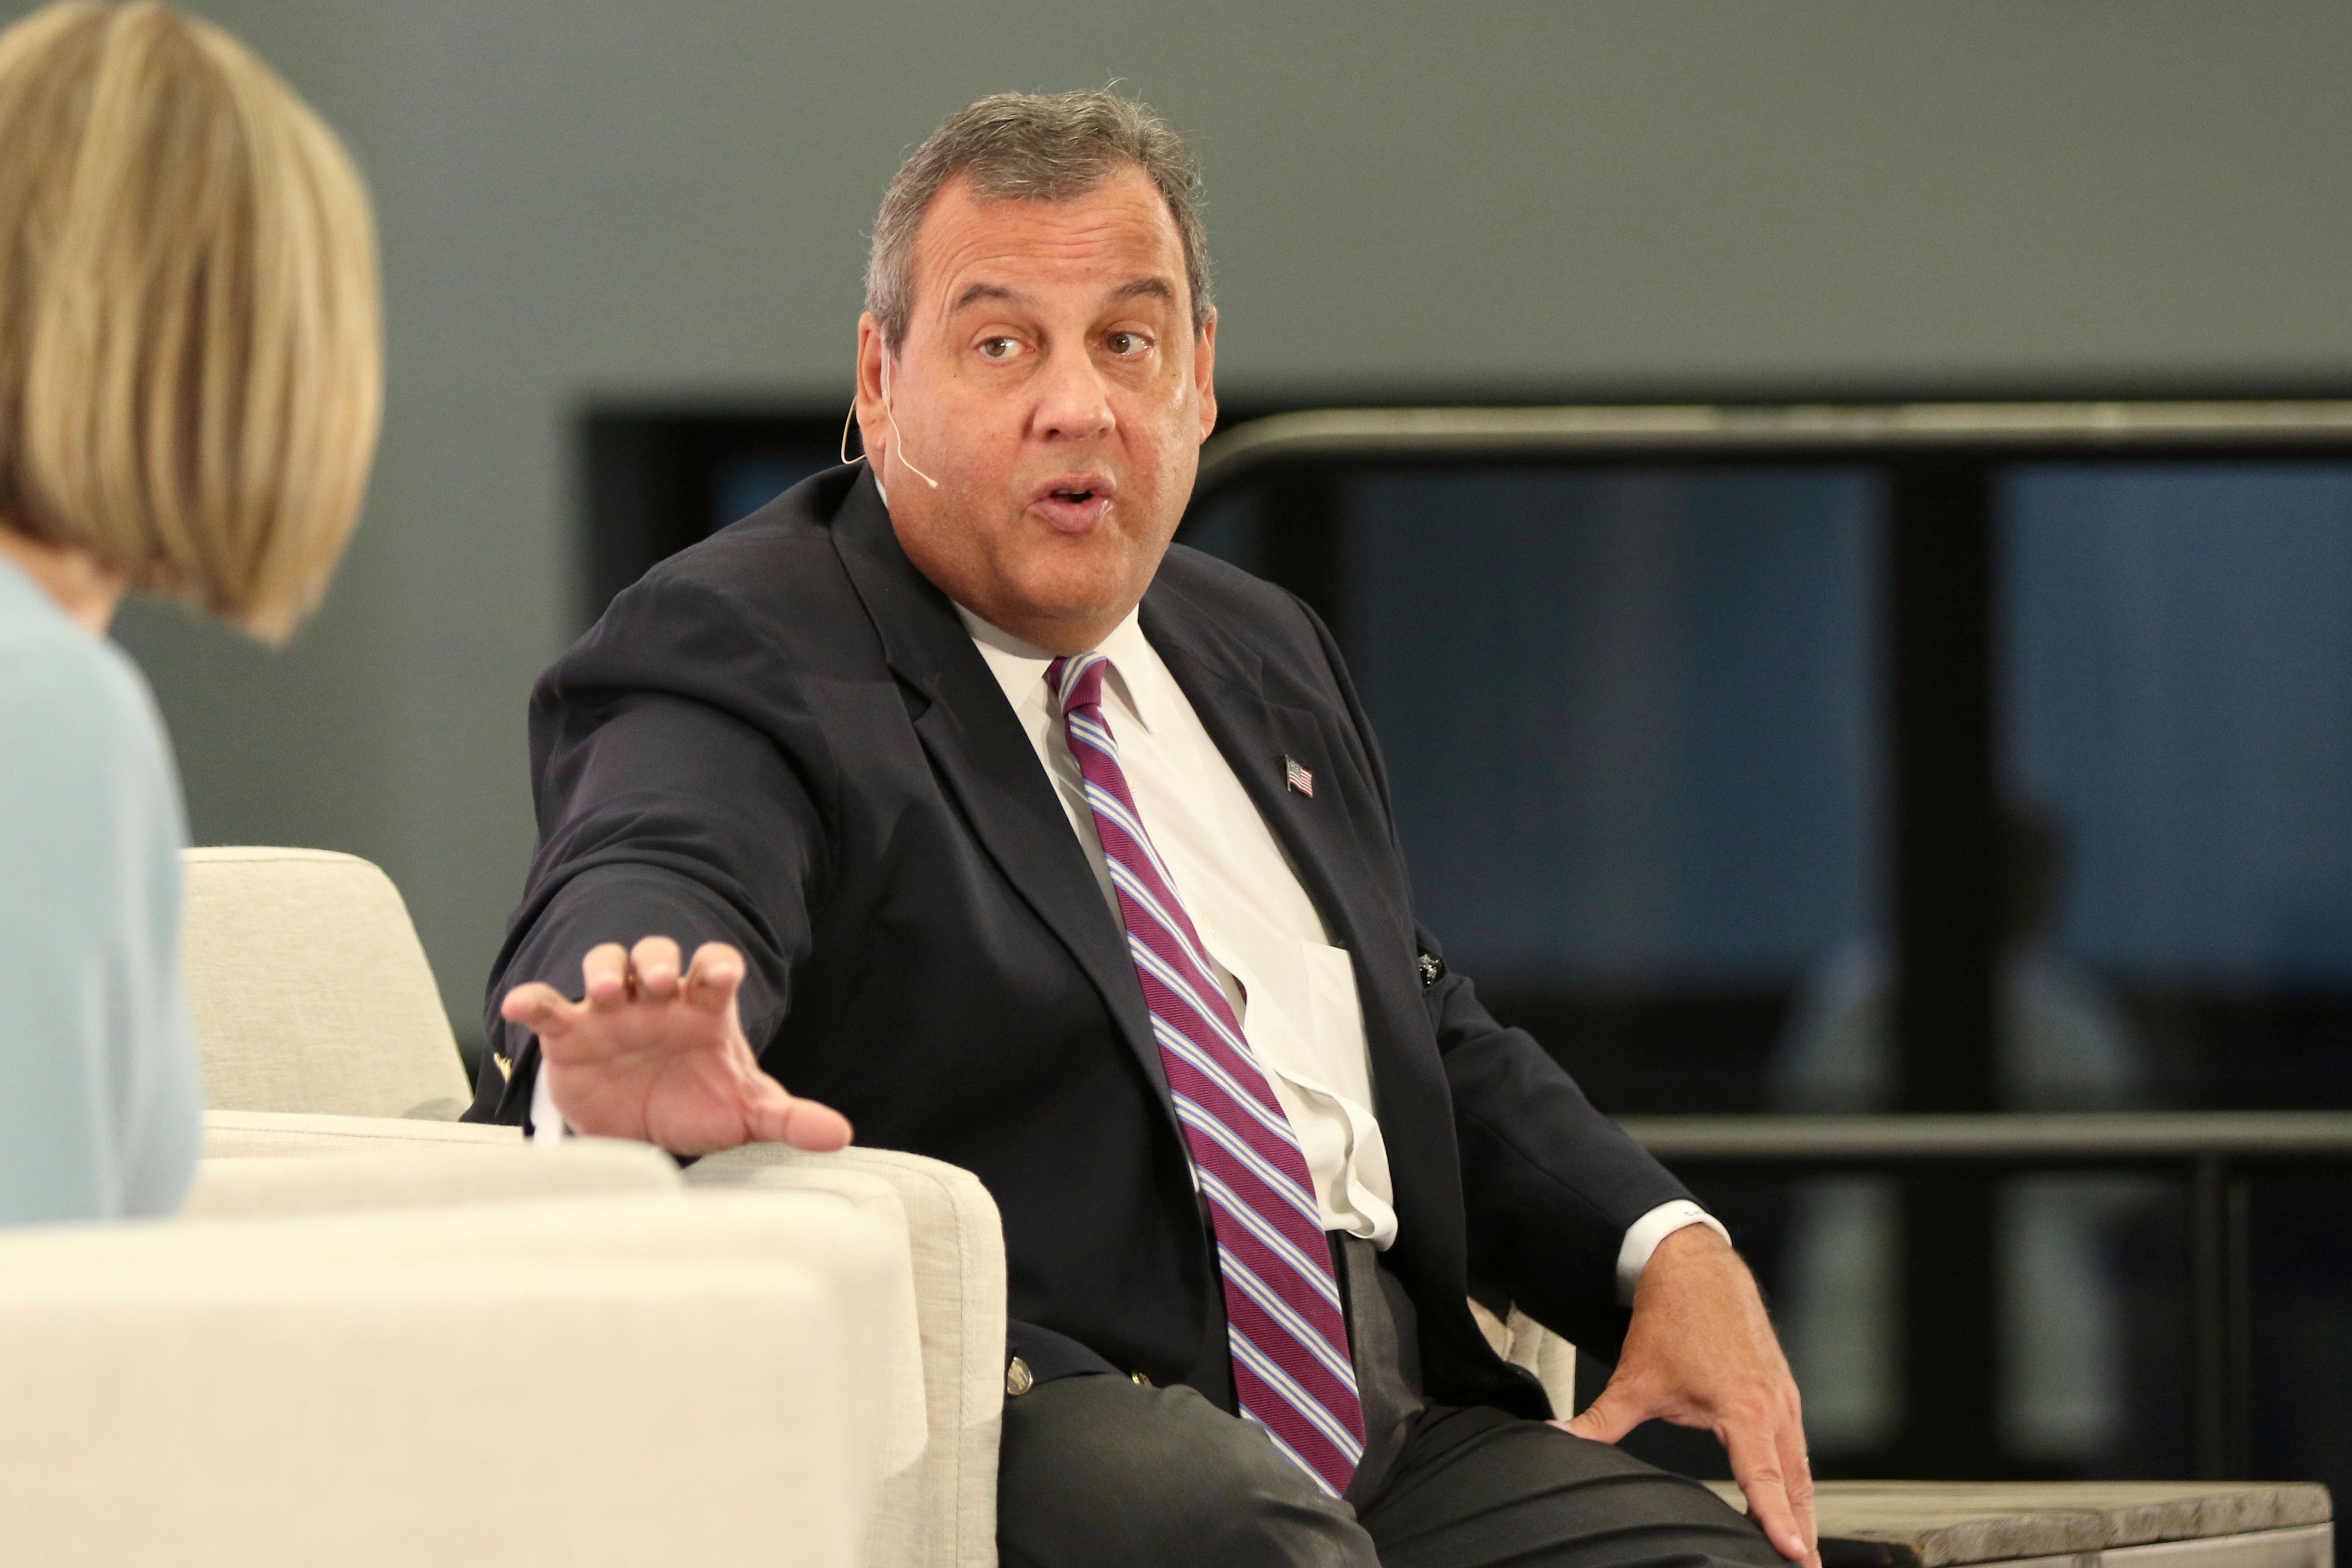 Chris Christie's Advice to Trump on Mueller: Stay Quiet